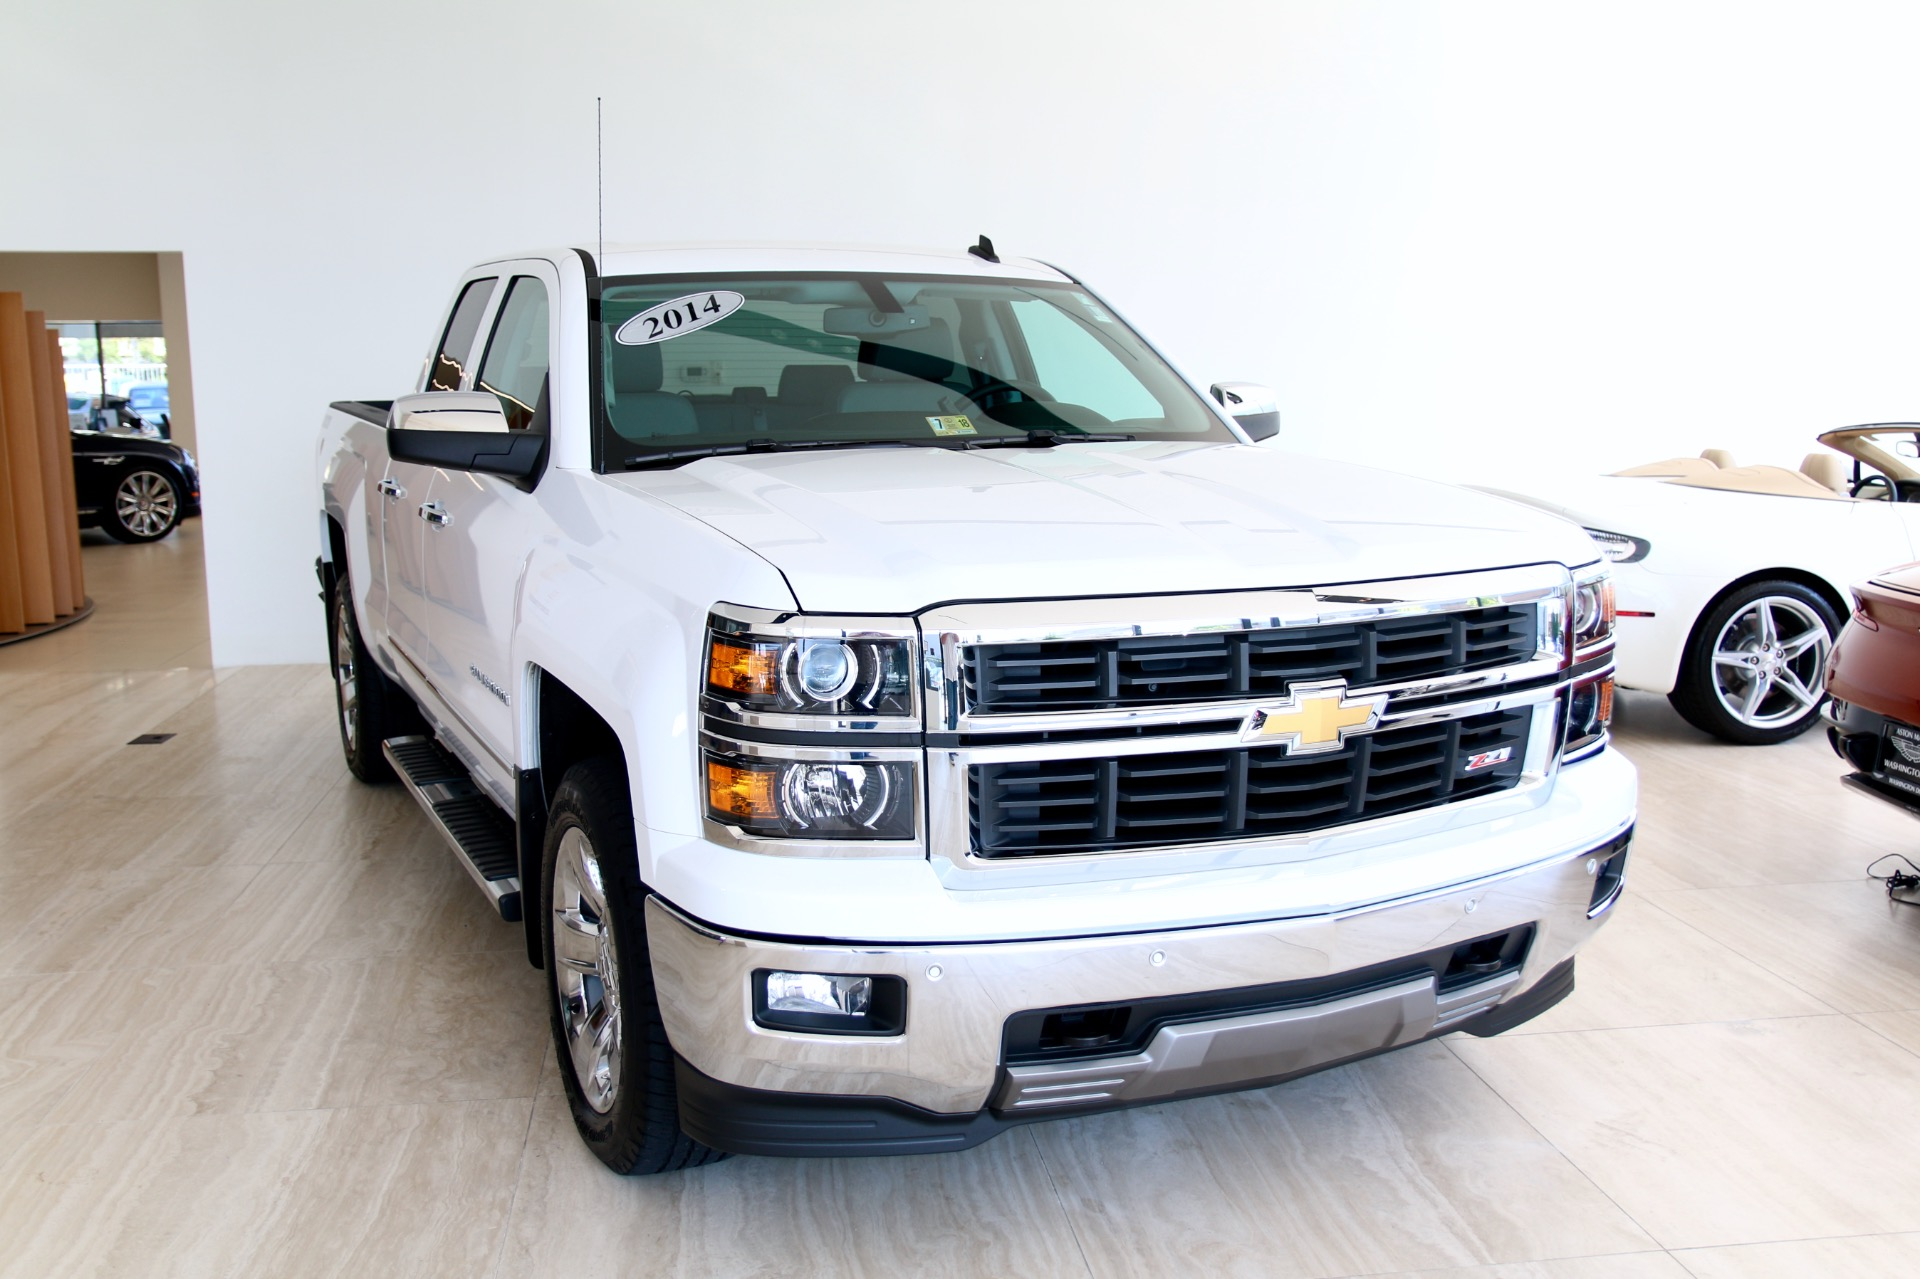 2014 chevy silverado ltz owners manual